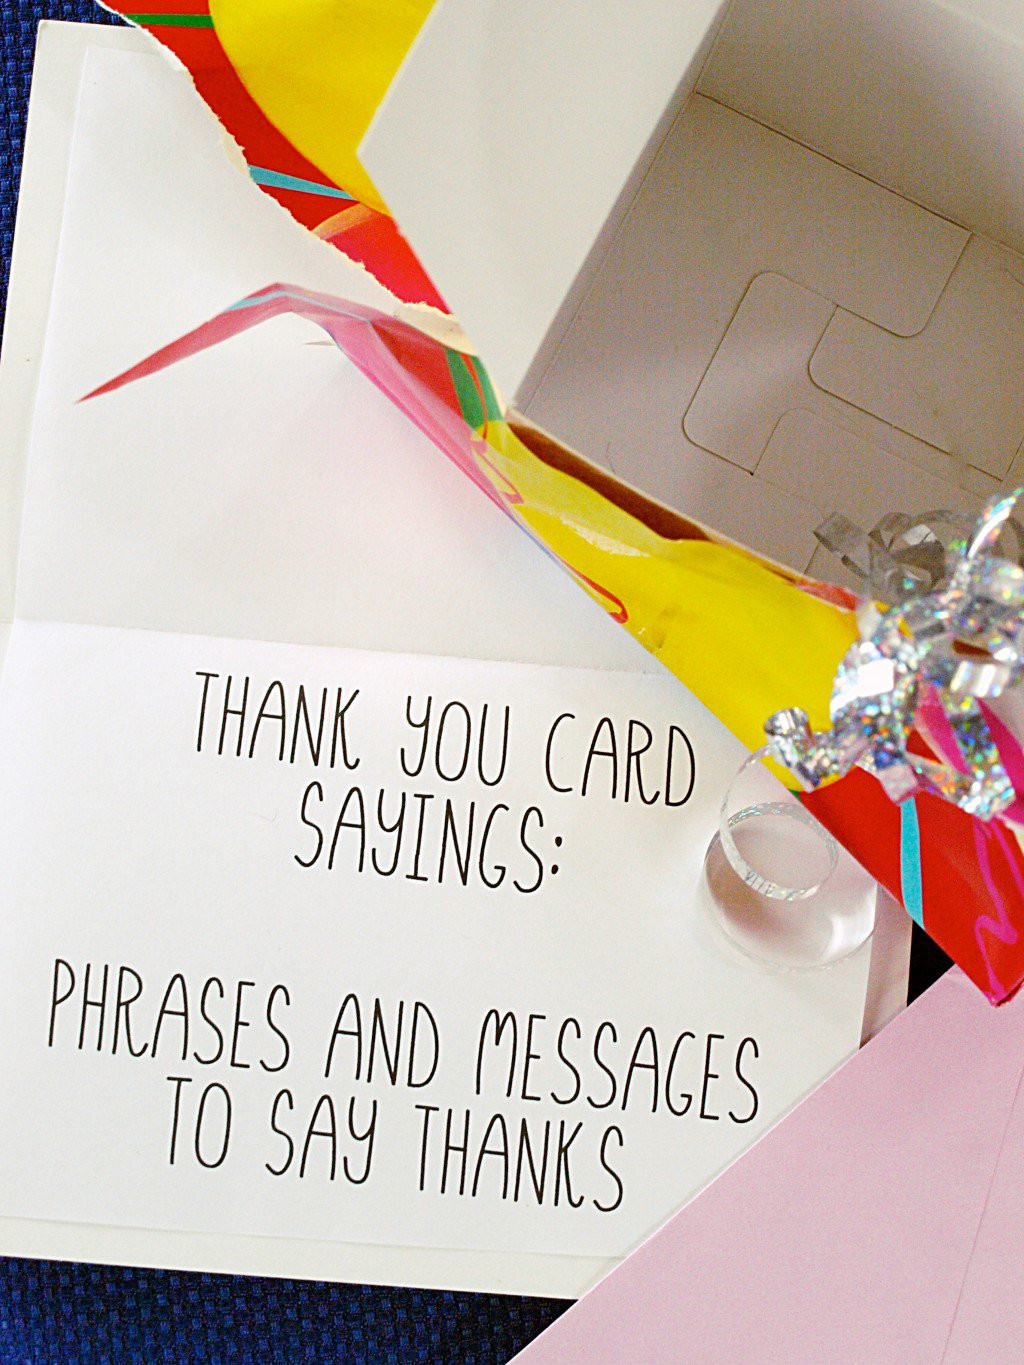 Thank You Gift Card Ideas  Thank You Card Sayings Phrases and Messages